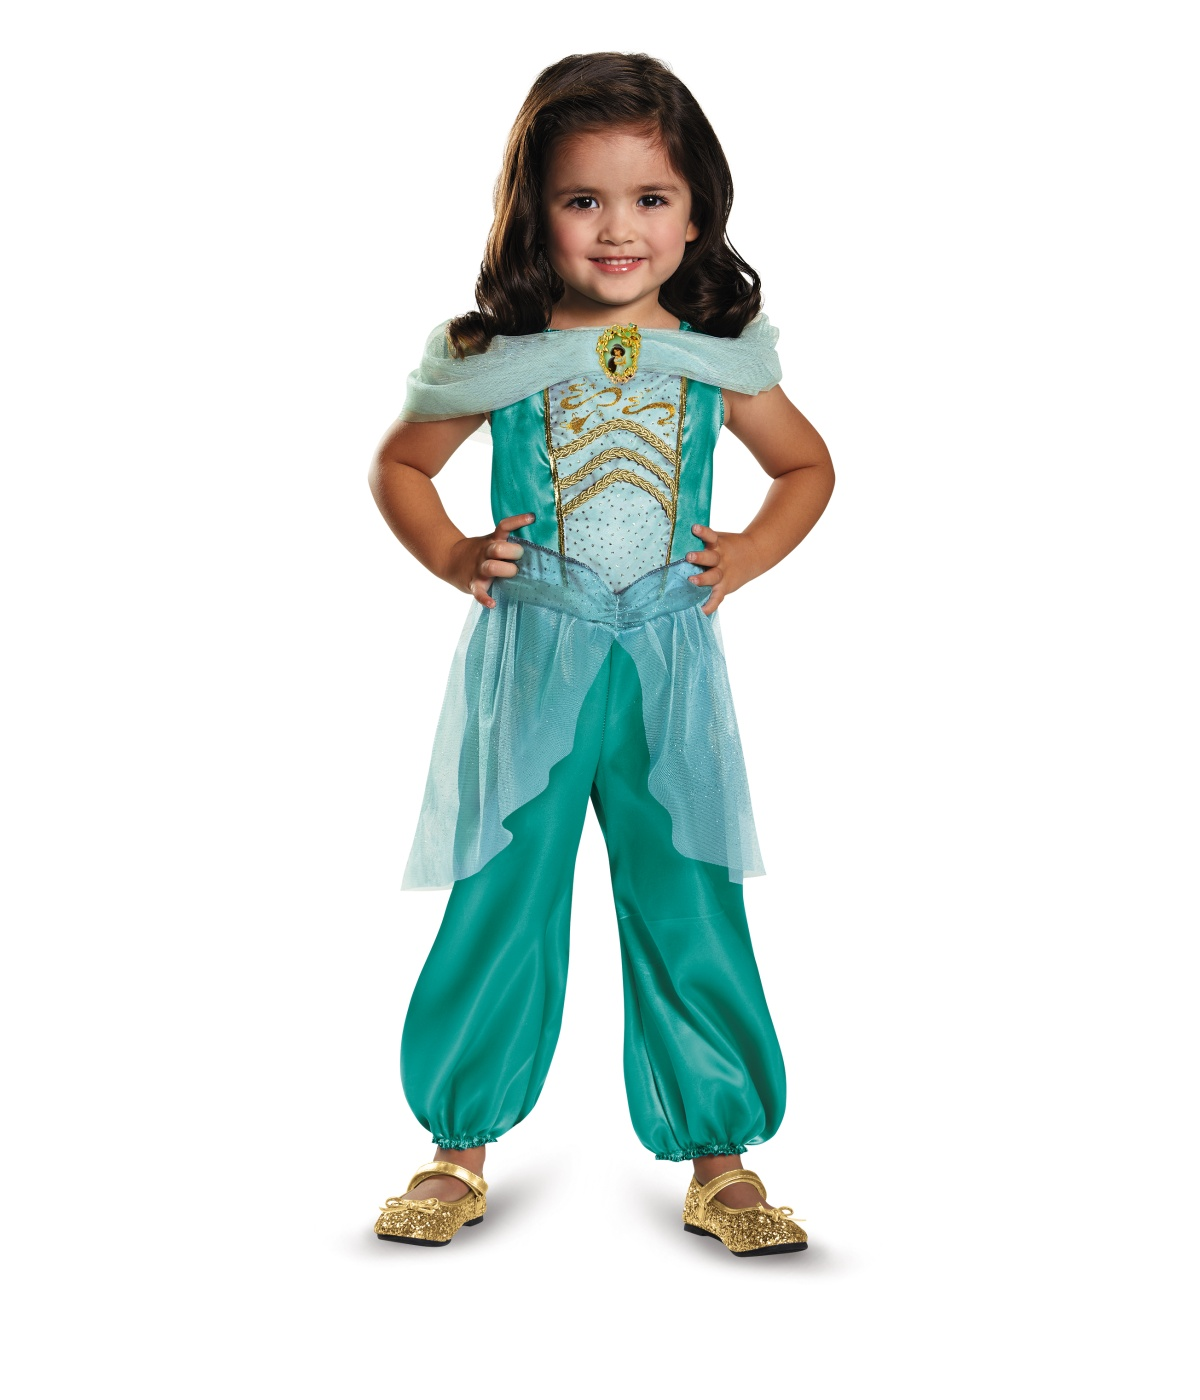 Disney Princess Jasmine Classic Girls Costume  sc 1 st  Wonder Costumes & Disney Princess Jasmine Classic Girls Costume - Princess Costumes